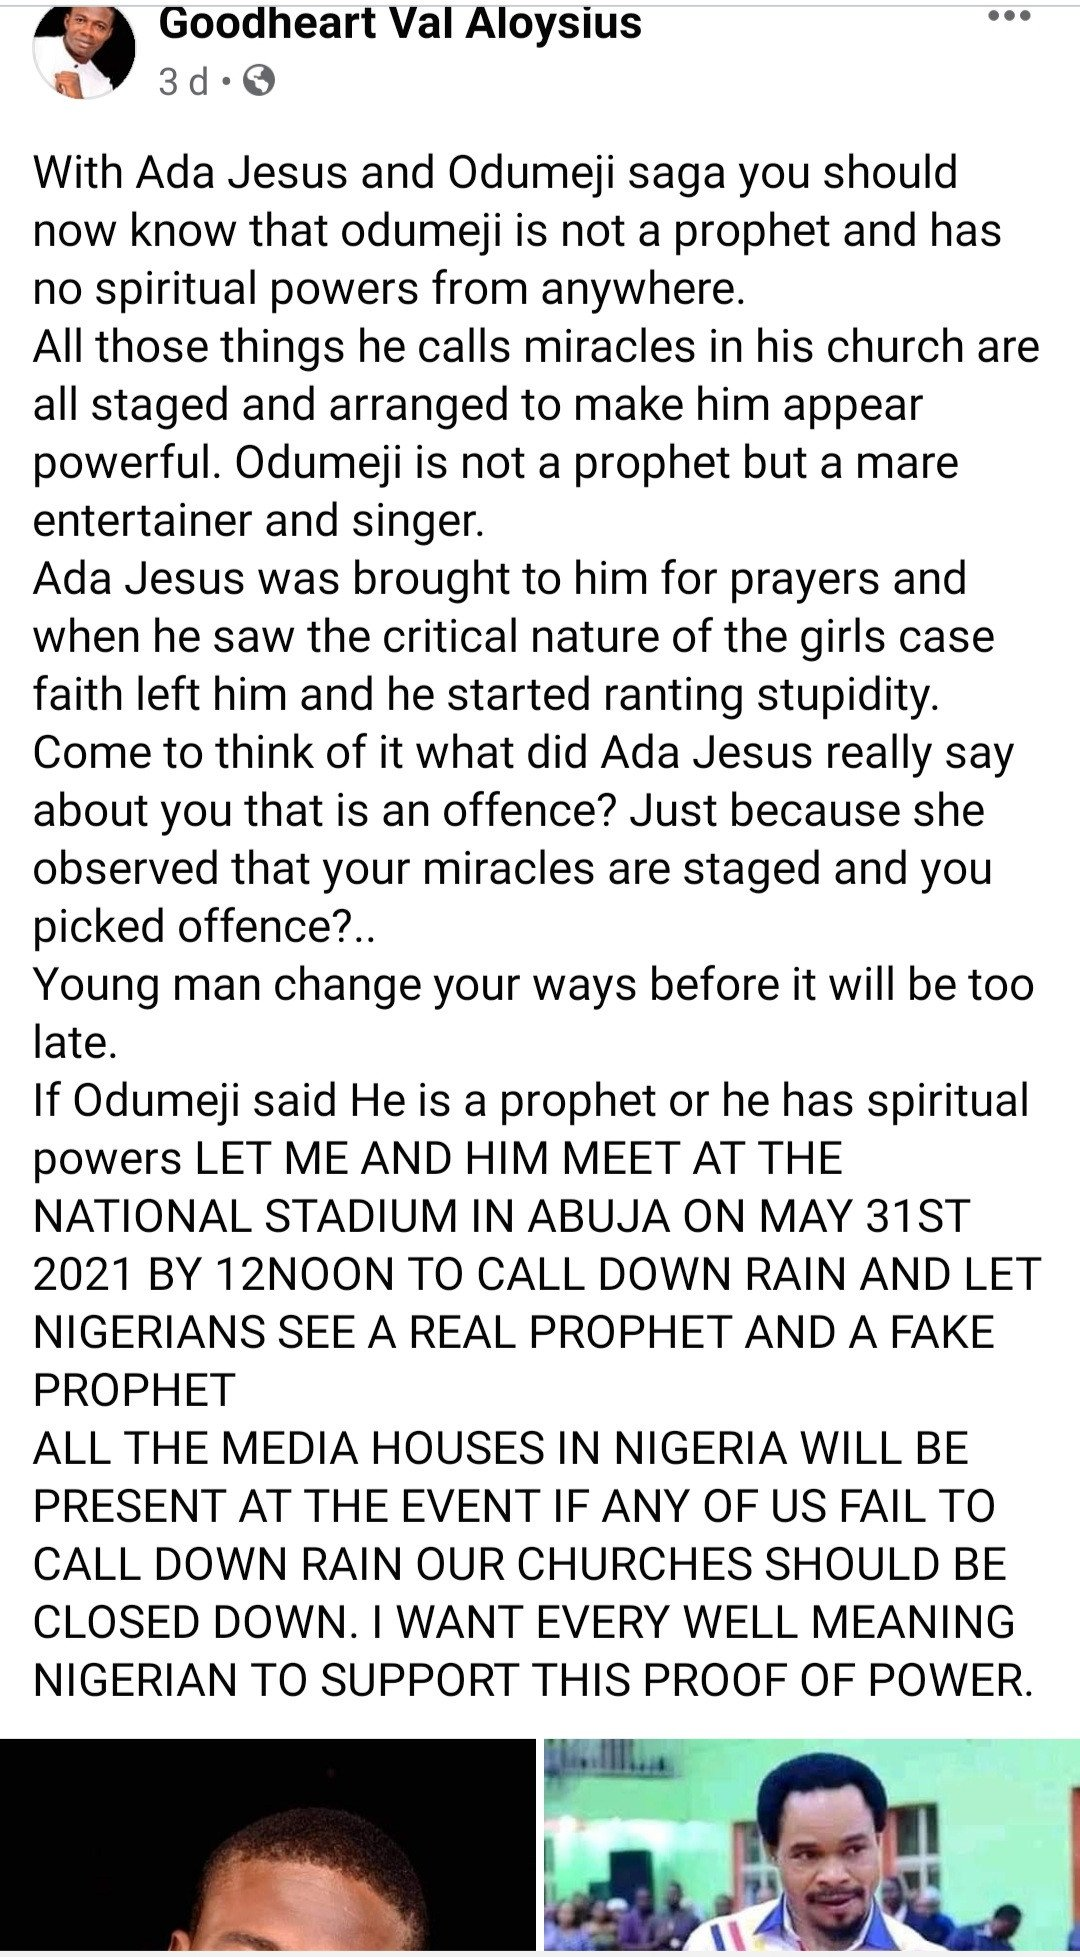 Pastor challenges Odumeje to a spiritual battle, invites the public to come and watch 4